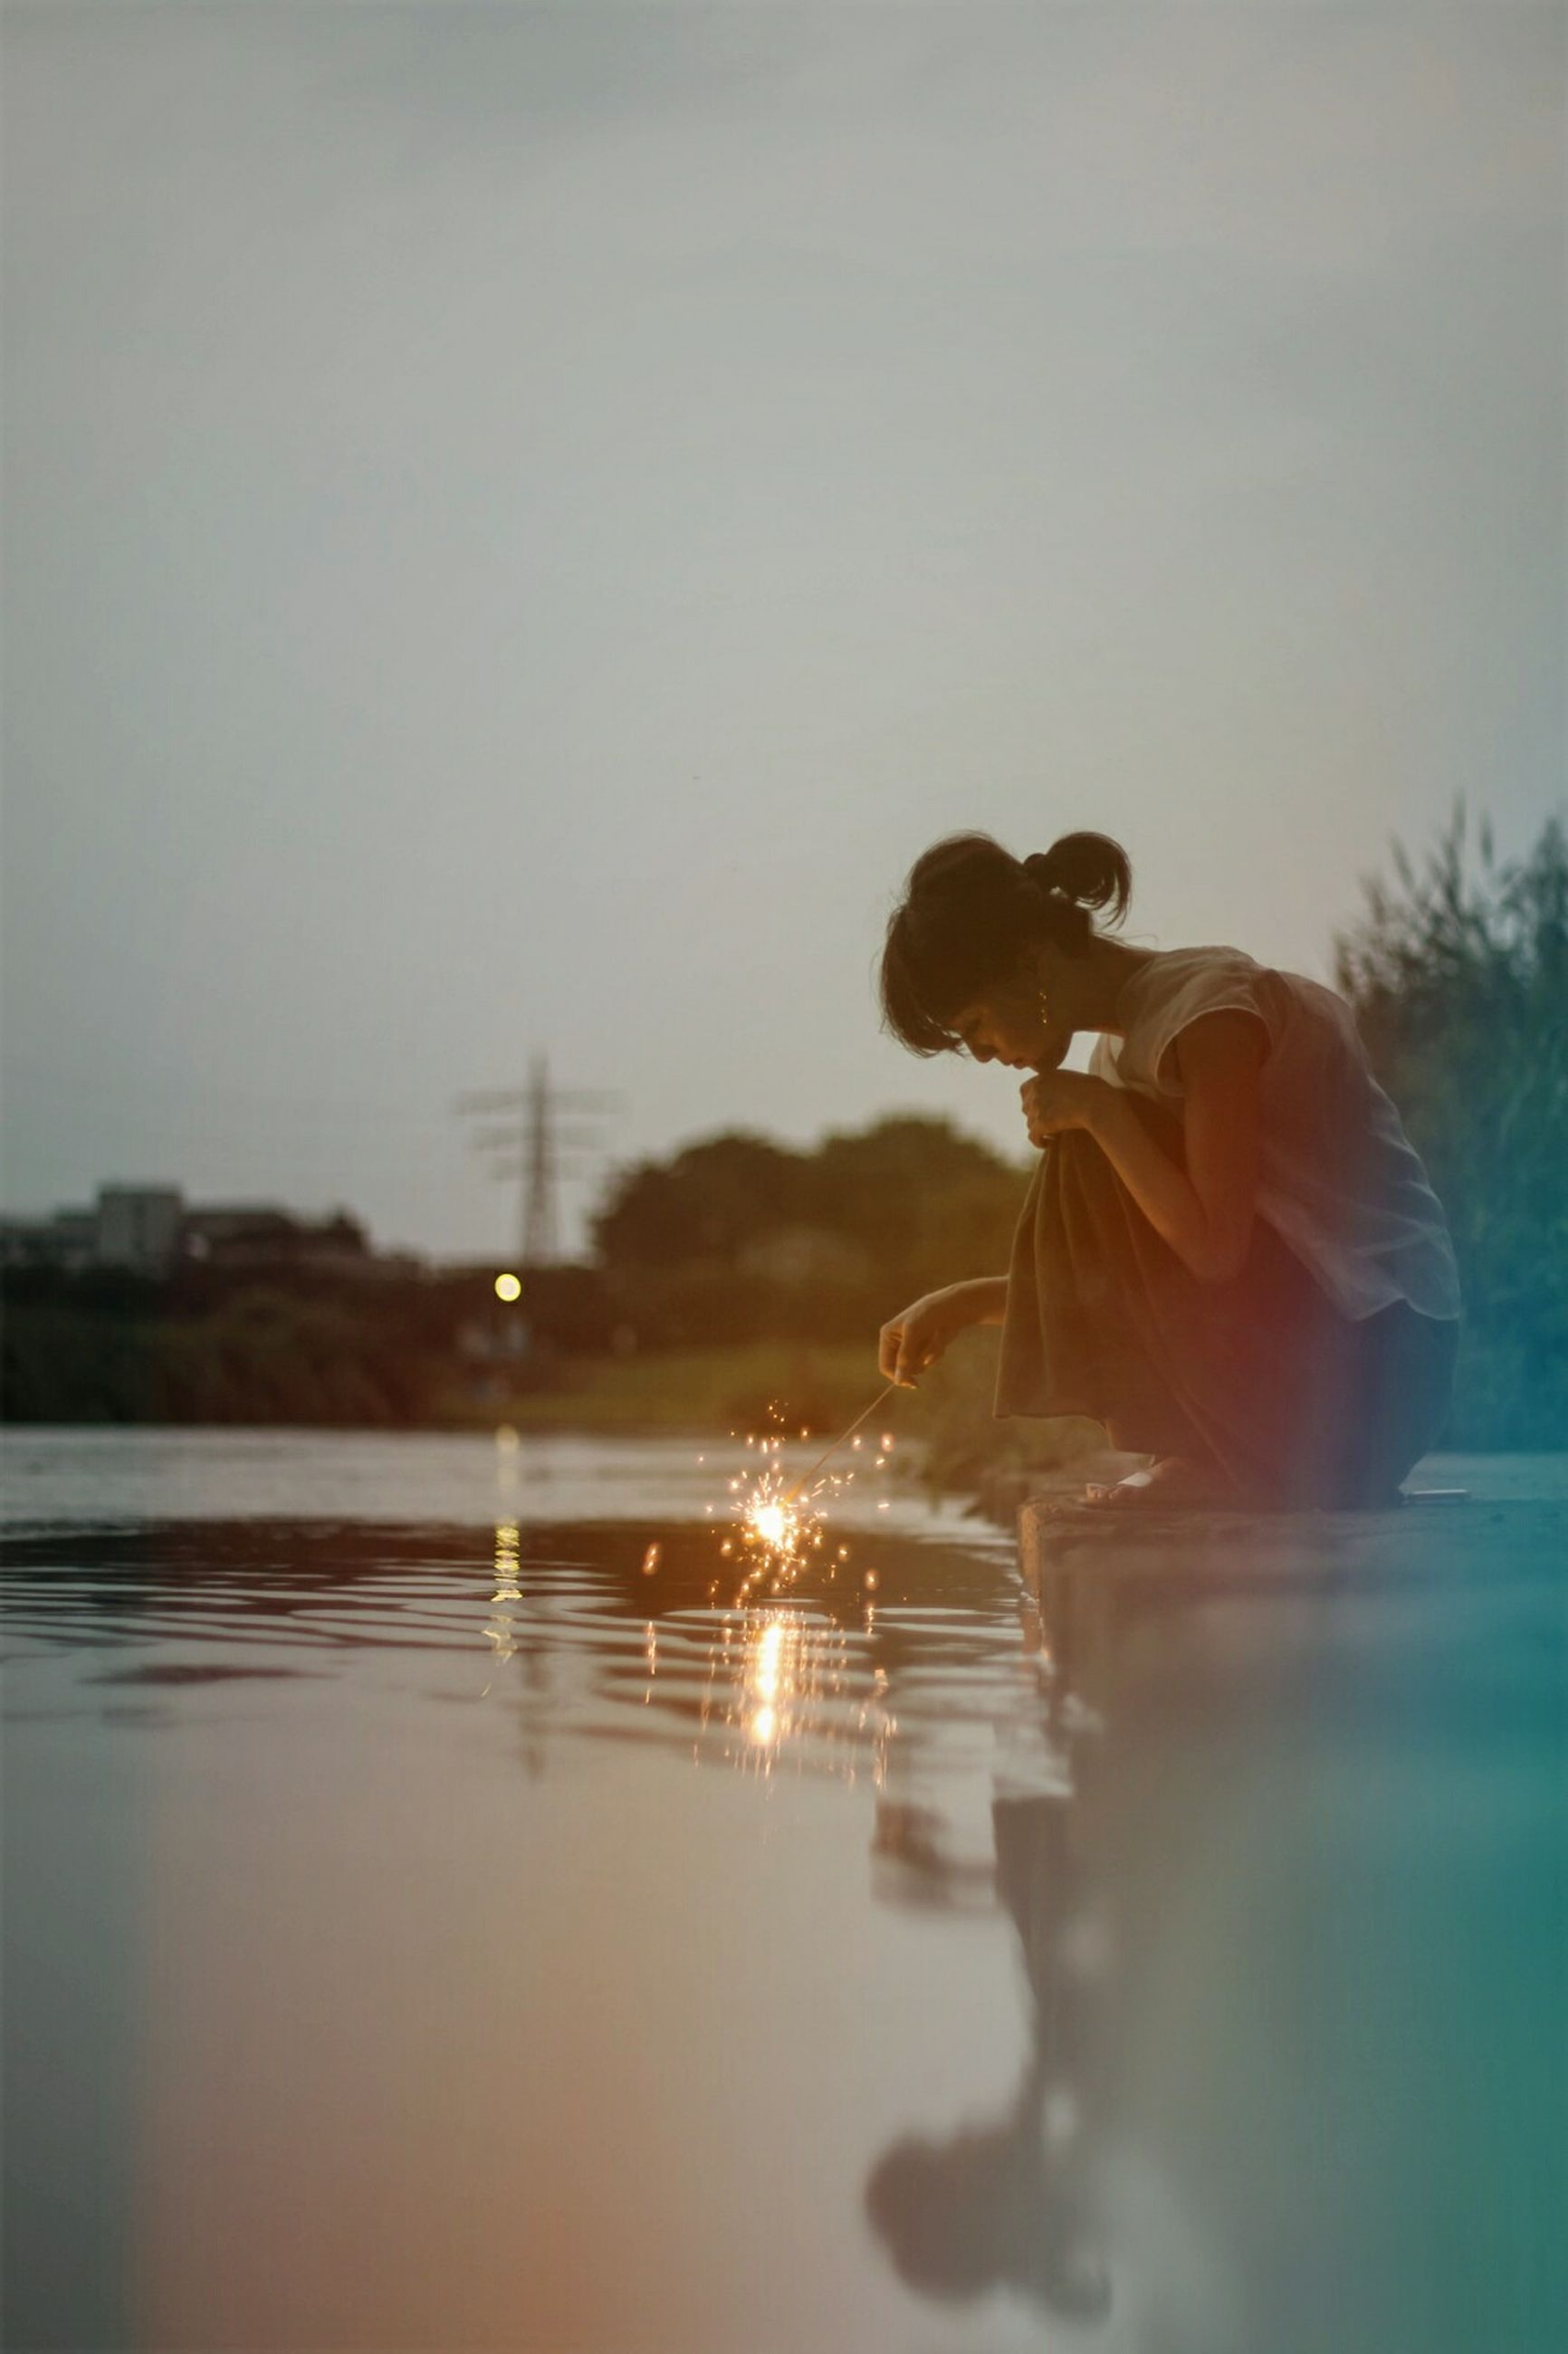 water, one person, real people, lifestyles, men, sky, nature, sunset, lake, childhood, beauty in nature, outdoors, day, people